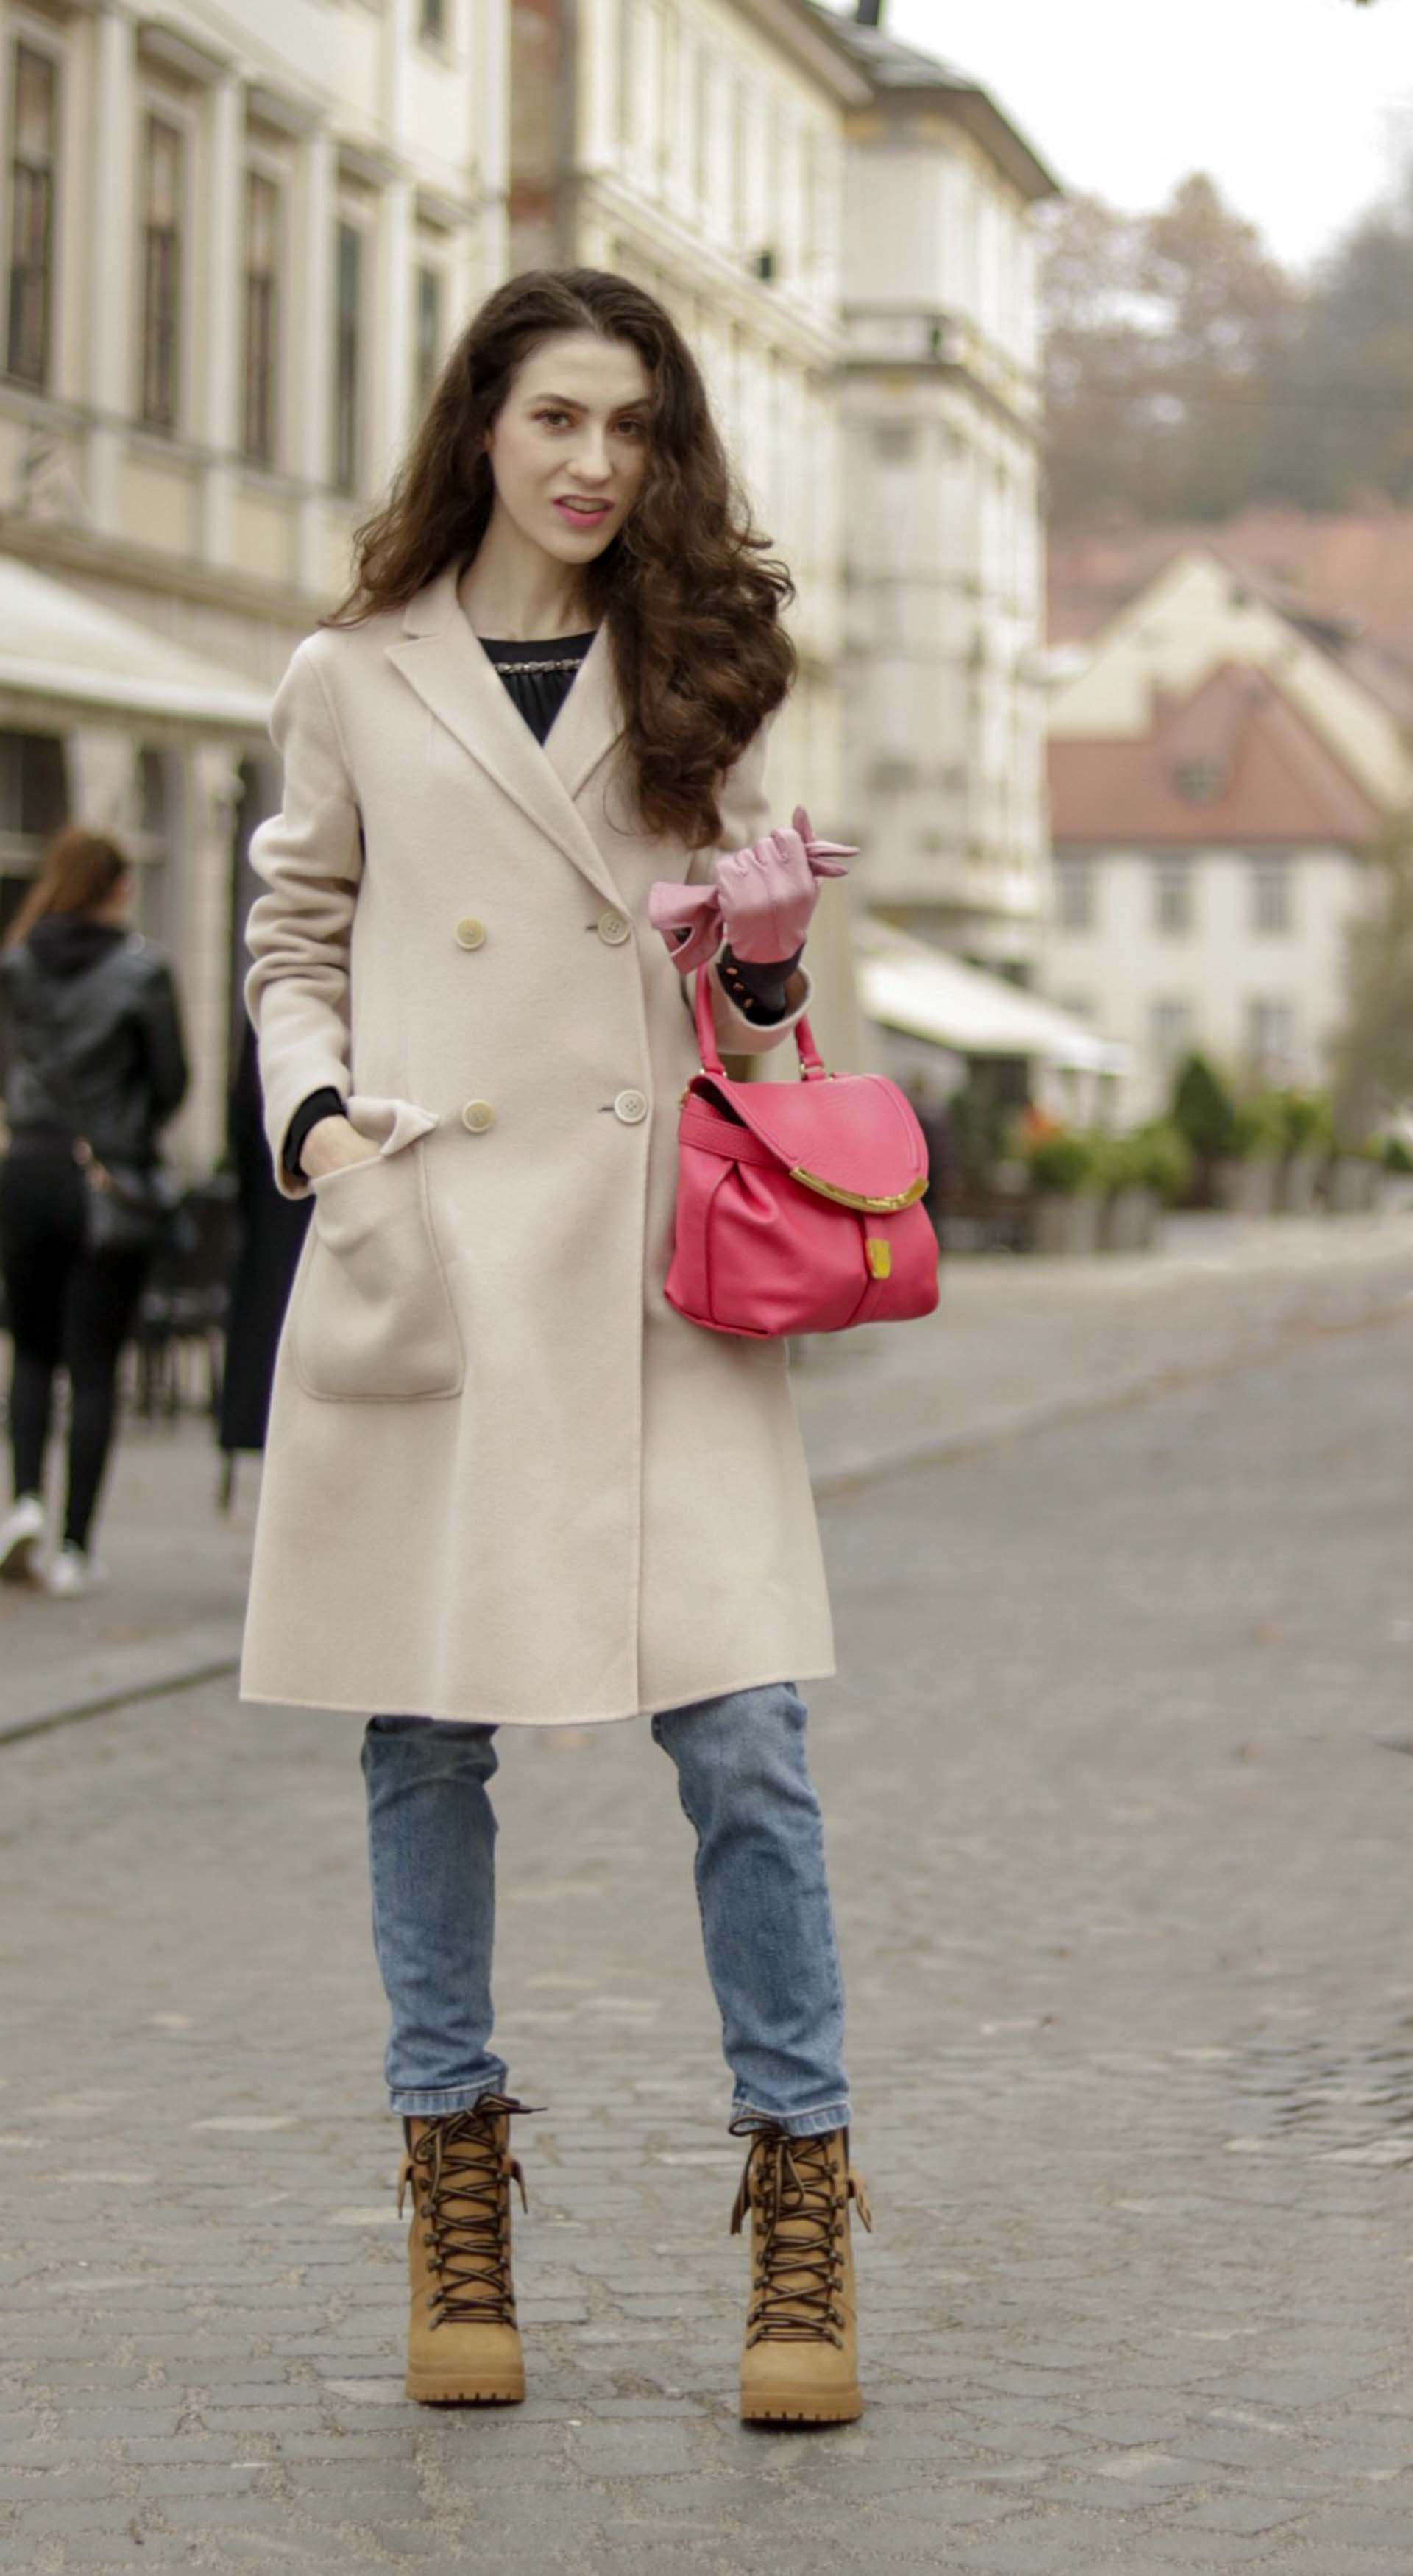 Must follow Slovenian Fashion Blogger Veronika Lipar of Brunette from Wall Street dressed in See By Chloé hiking boots with heels, A.P.C. light blue straight leg denim jeans, Max Mara double-breasted coat, See By Chloé pink top handle bag, black blouse, pink leather gloves in winter